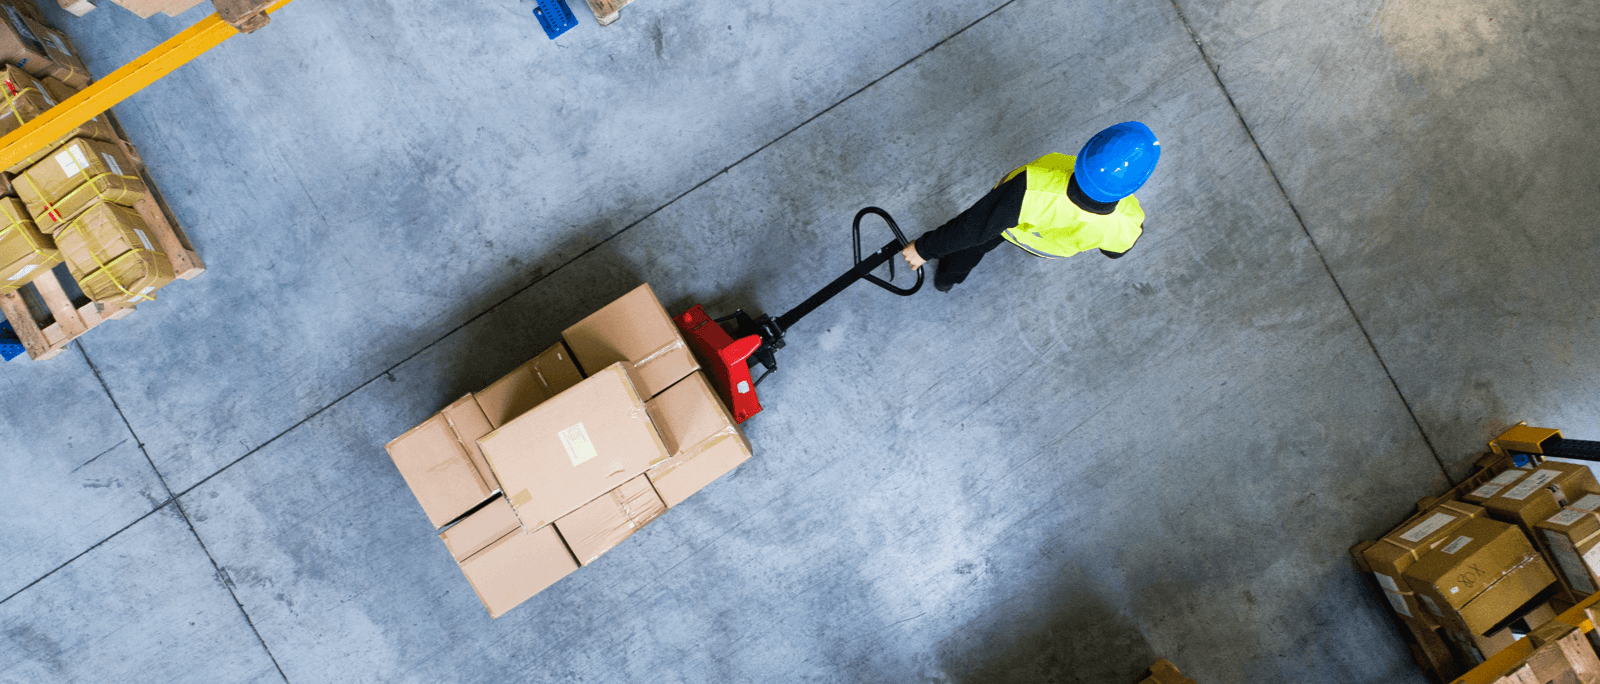 15 Interesting Facts About The Warehouse Industry